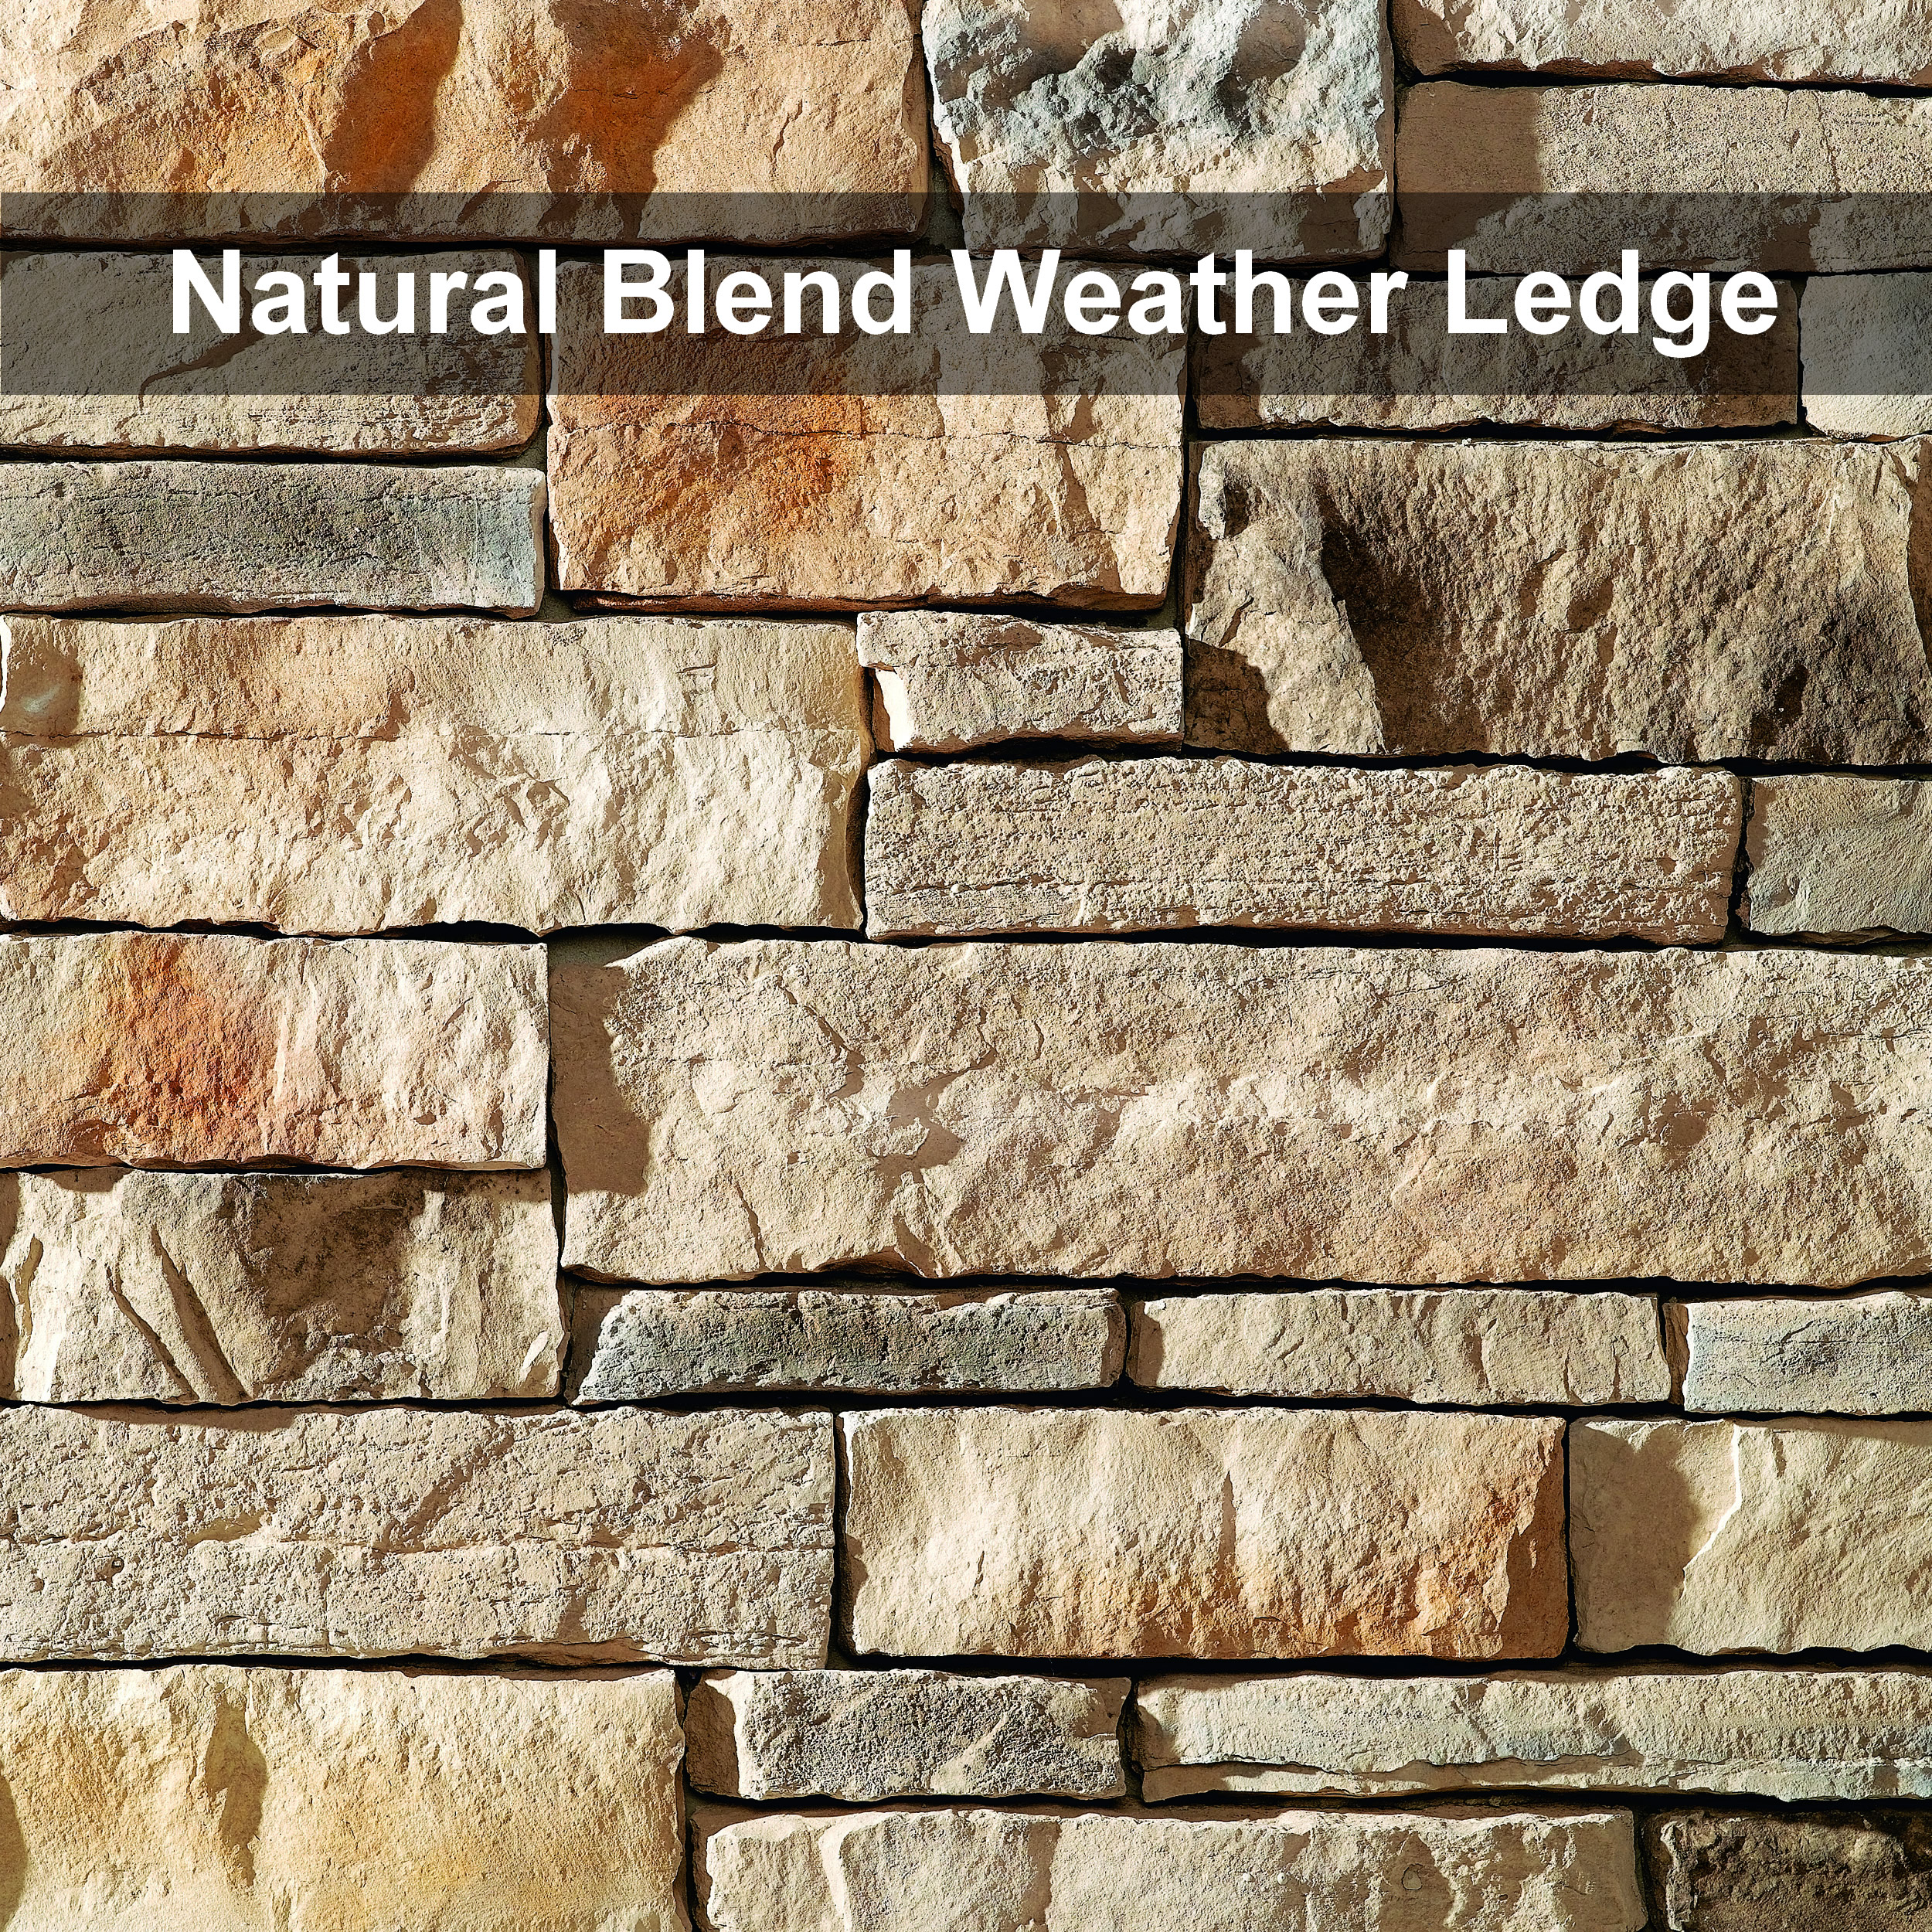 DQ_Weather Ledge_Natural Blend_Profile.jpg